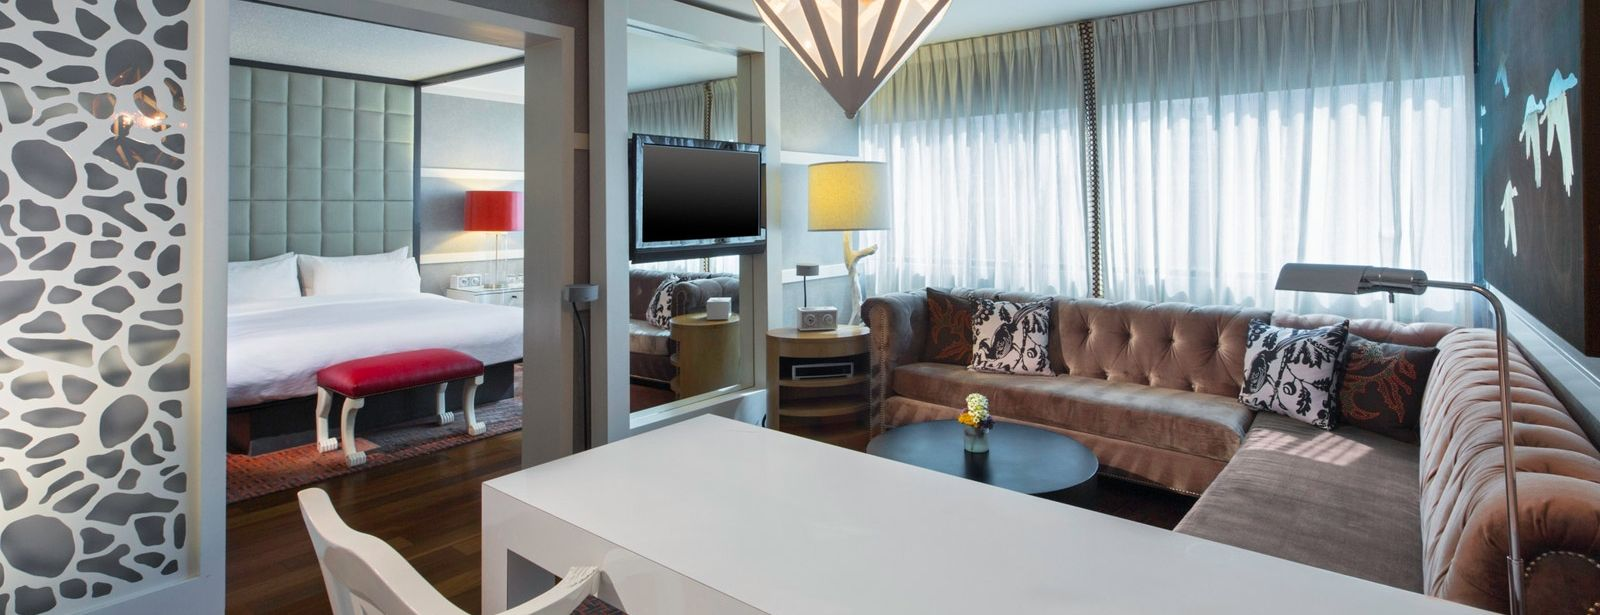 WOW Suite | W Atlanta - Buckhead